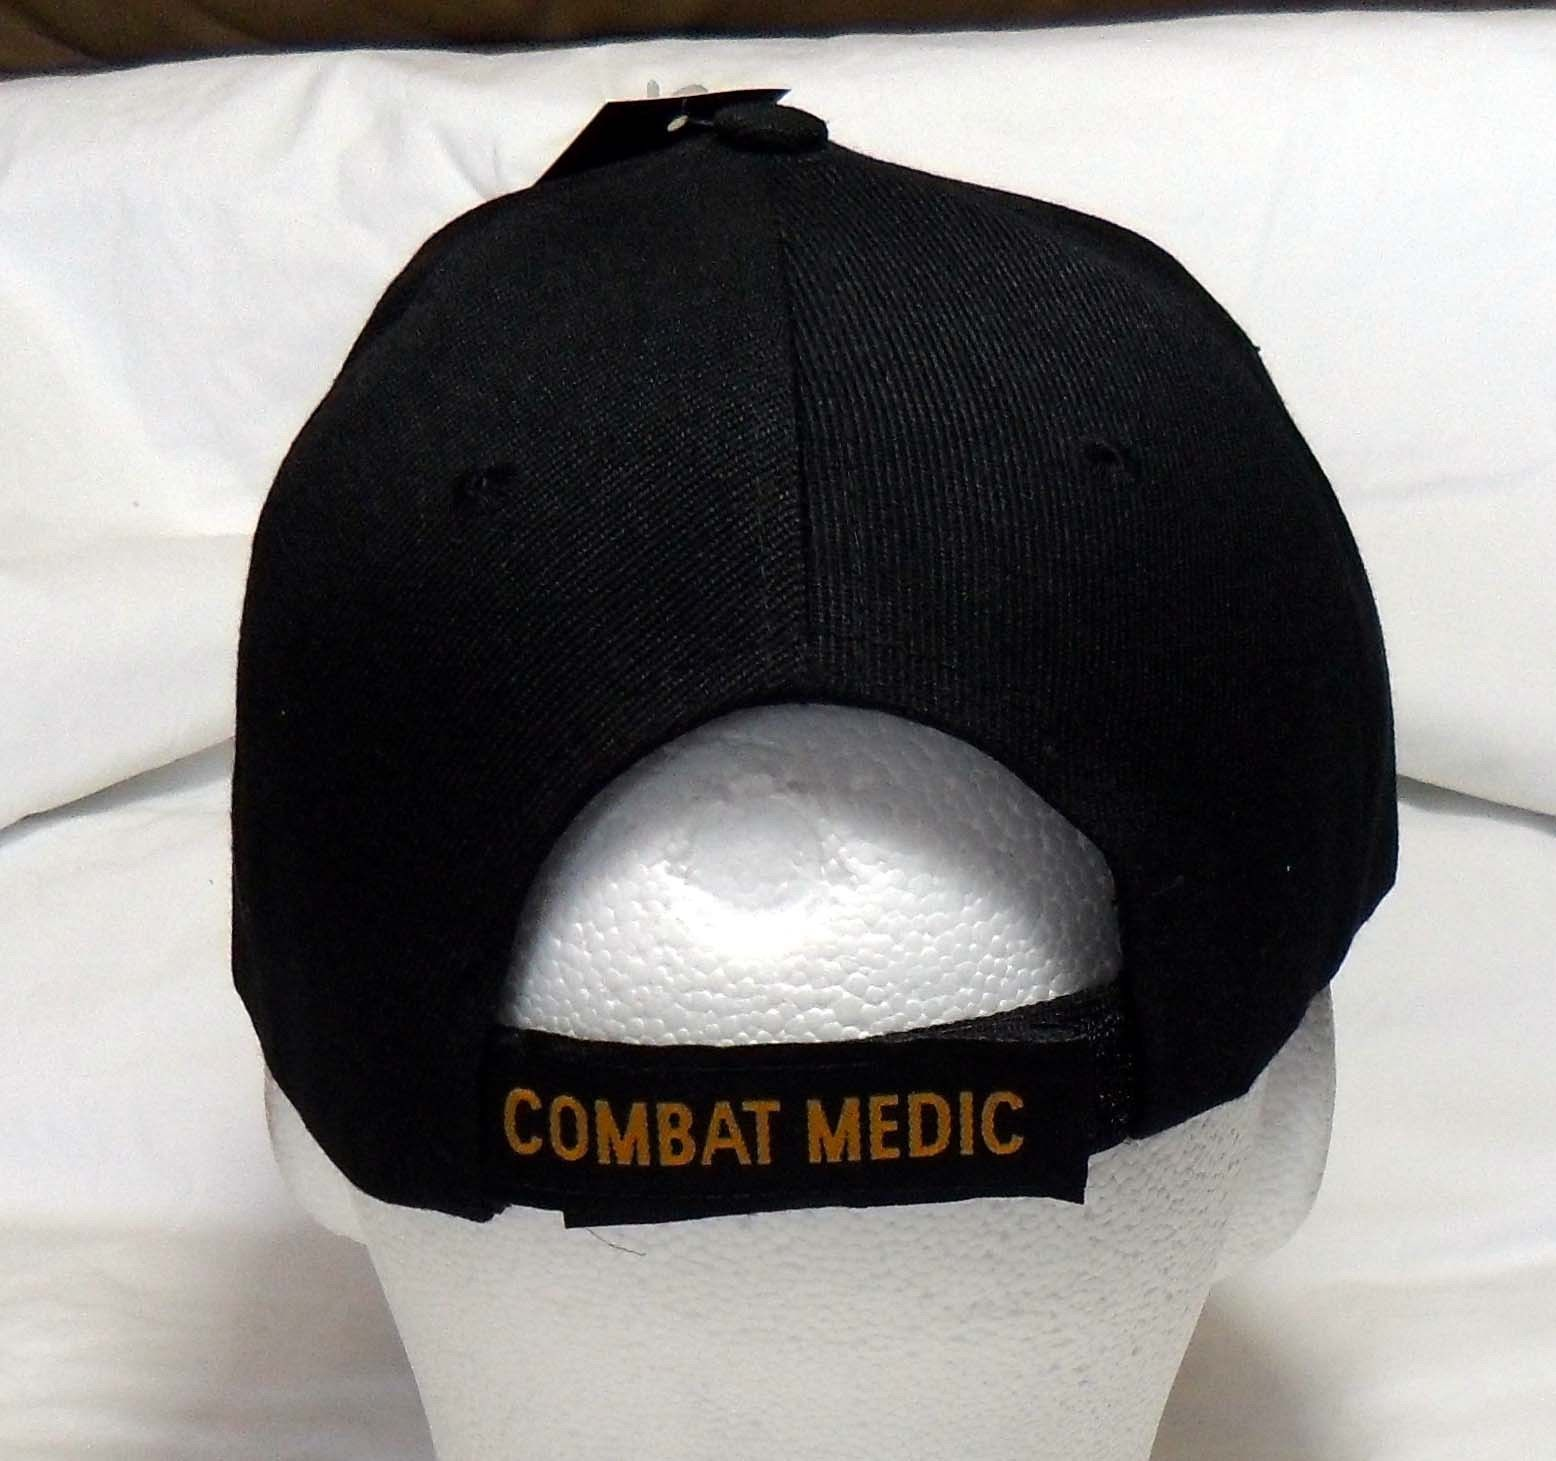 US ARMY COMBAT MEDIC Field Medic U.S. Army Officially Licensed Baseball Cap Hat